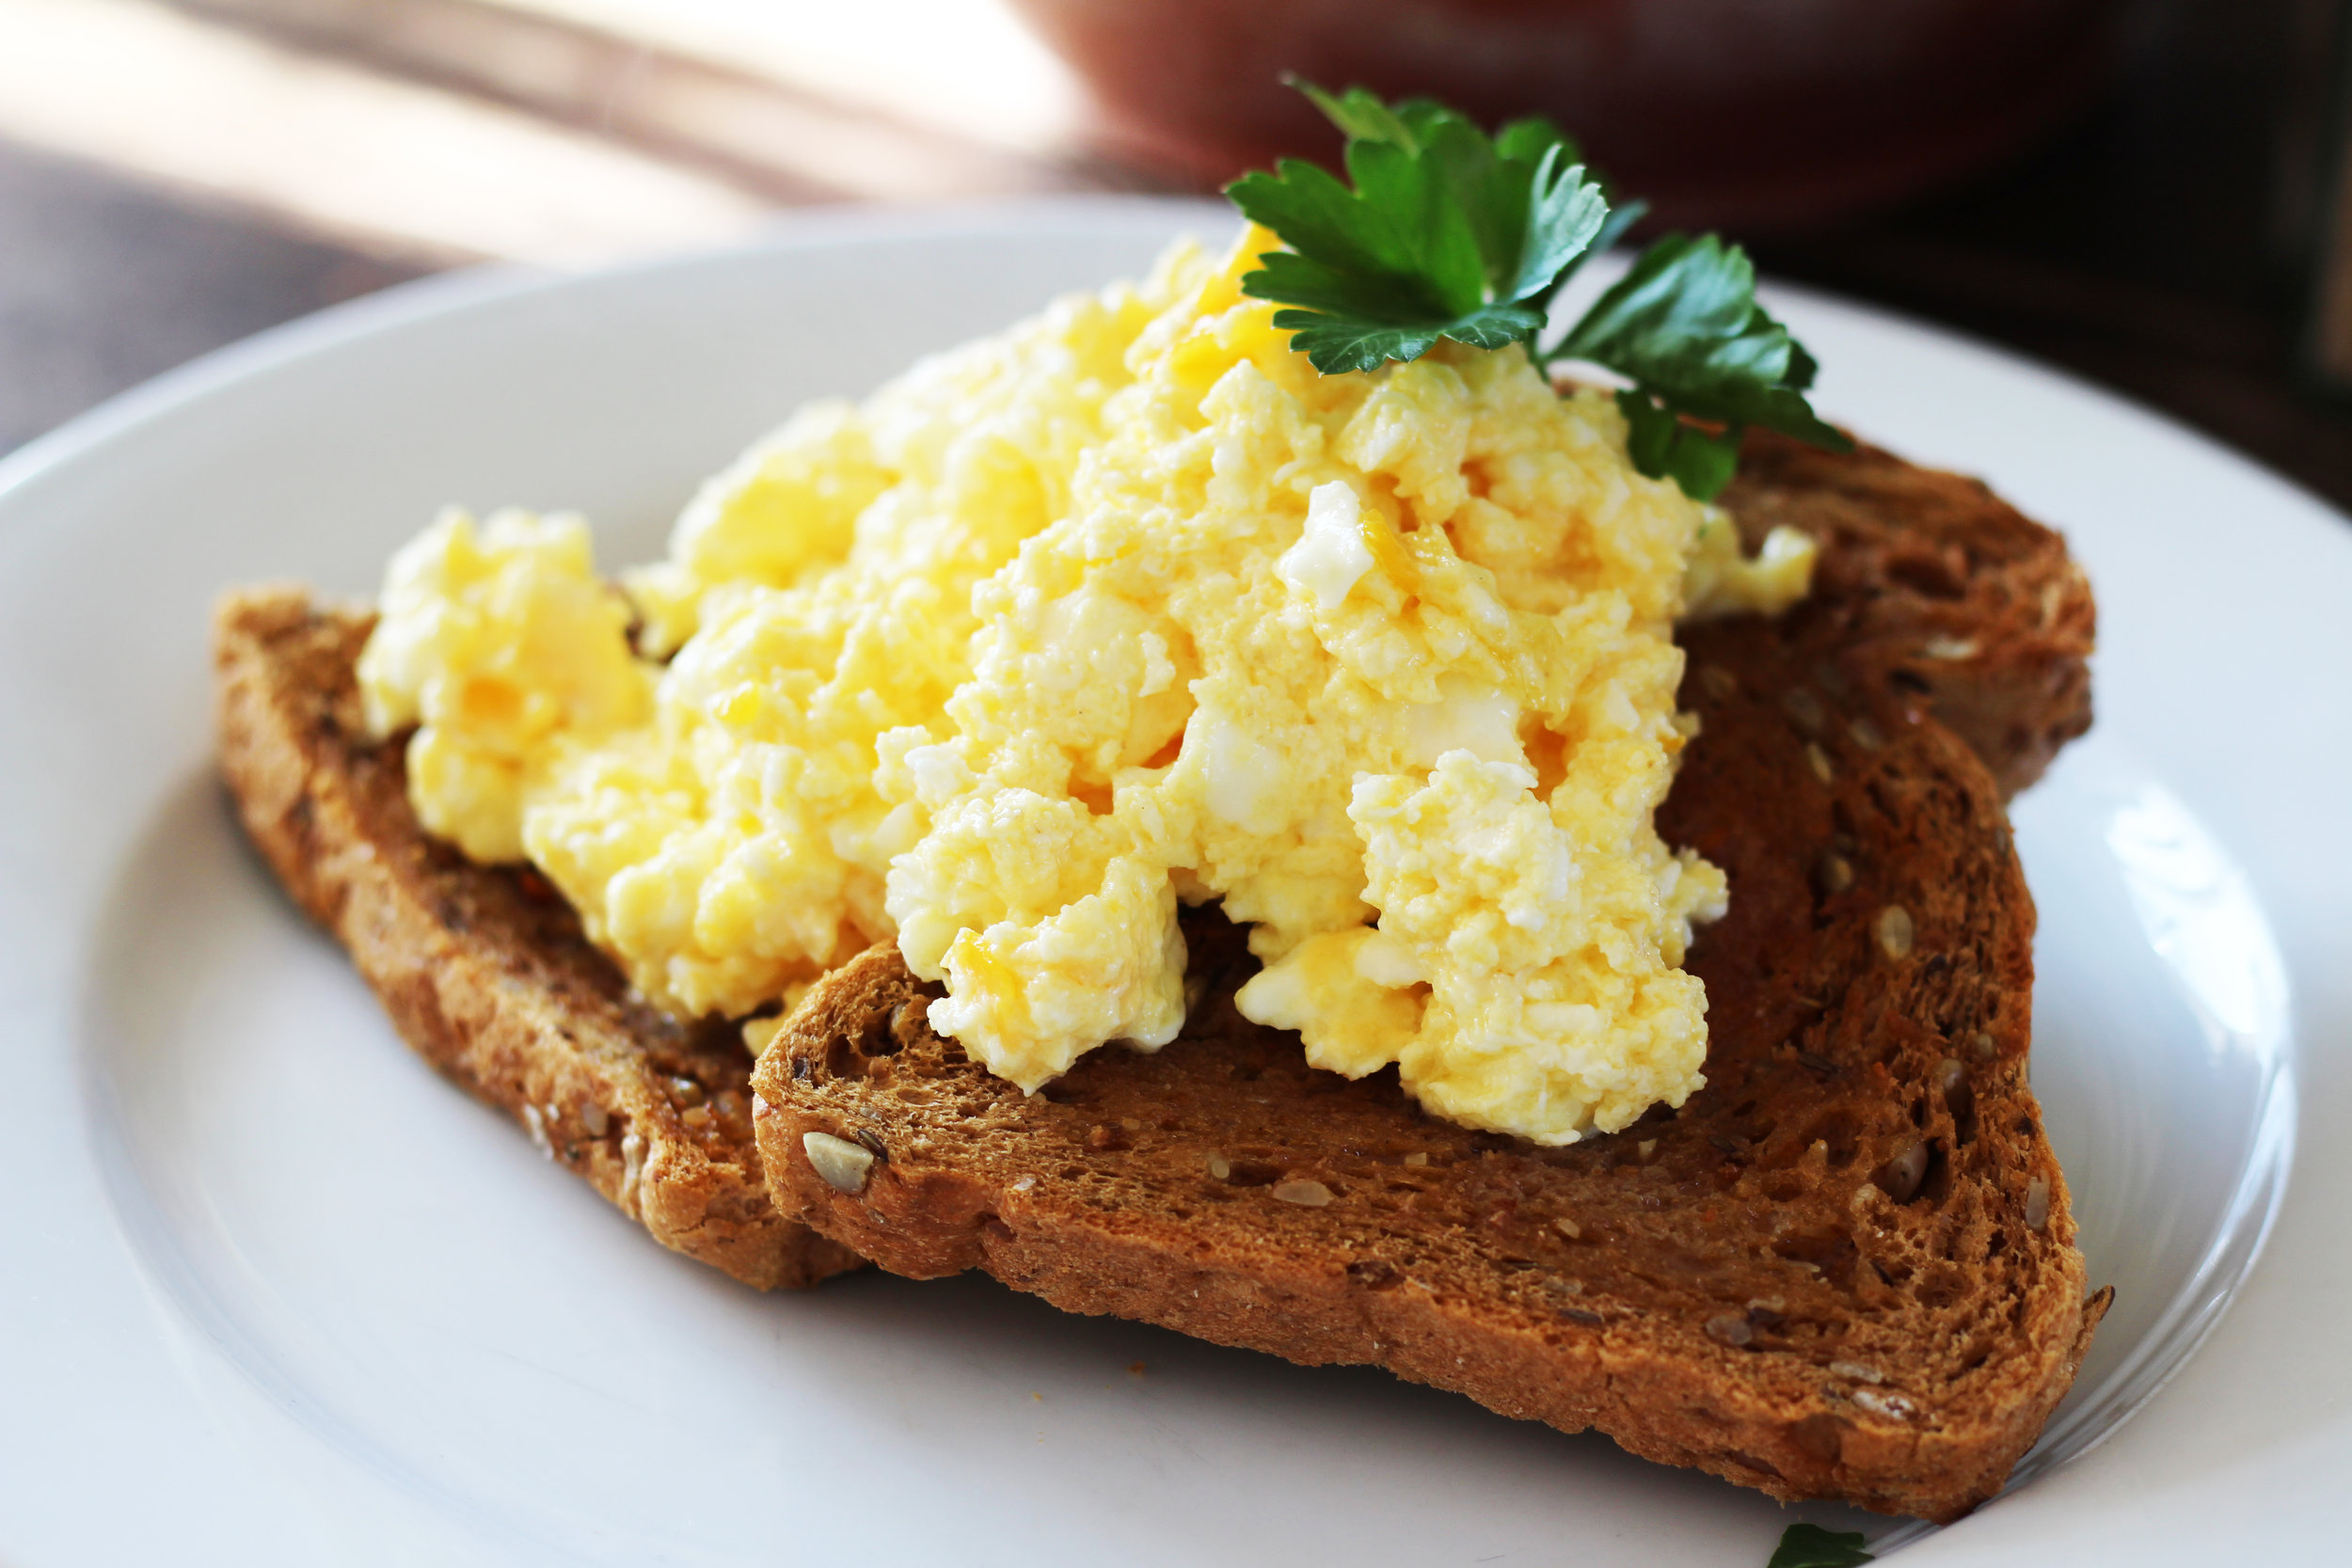 Not exactly revolutionary but scrambled eggs on seeded toast - yaaas.